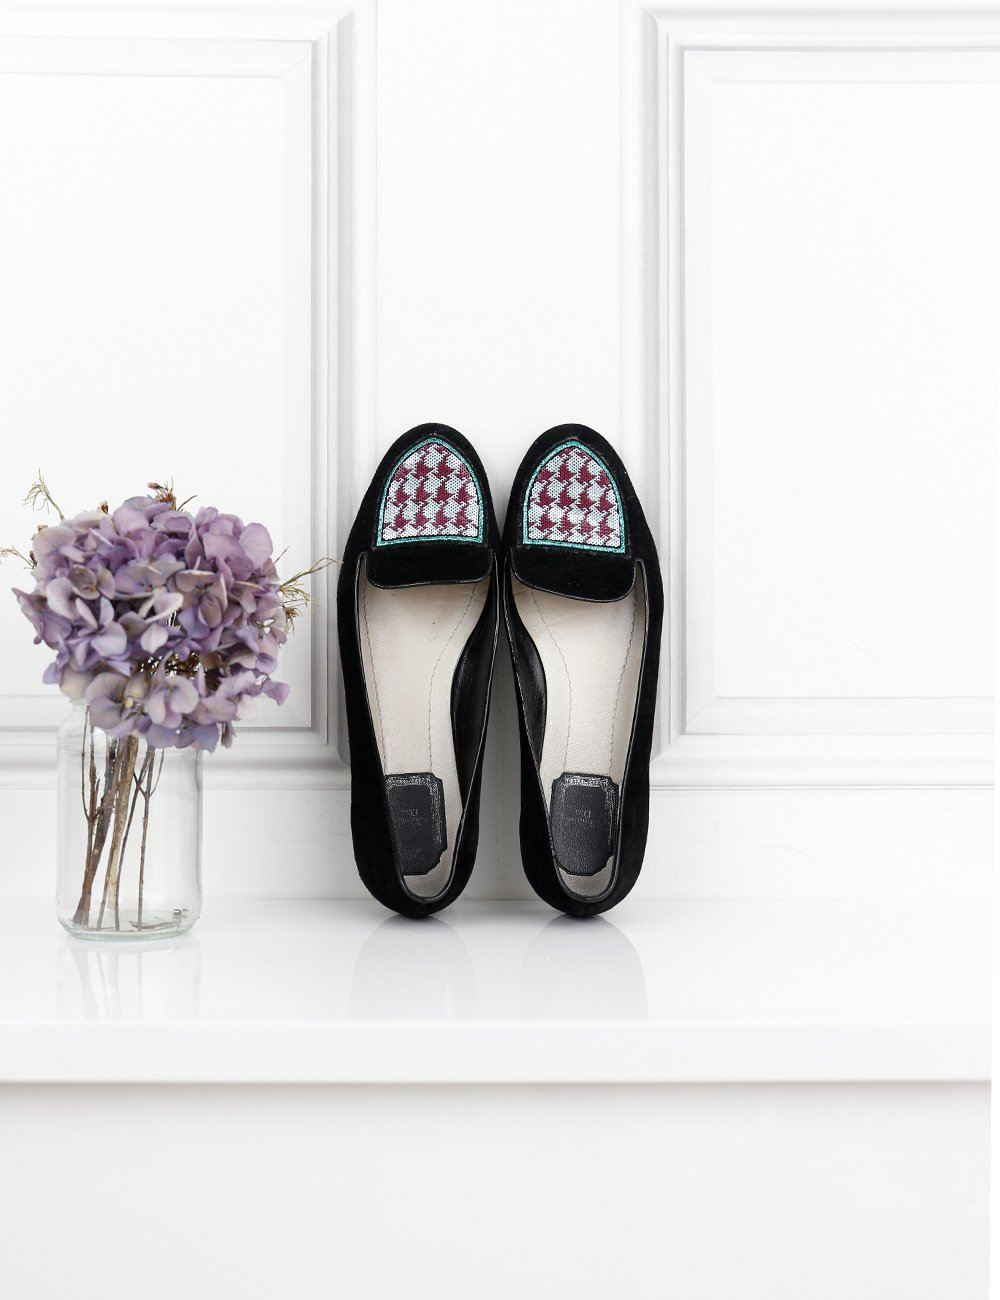 DIOR MULTICOLOUR SUEDE SLIPPERS WITH SEQUINNED DETAILS 7.5UK- My Wardrobe Mistakes